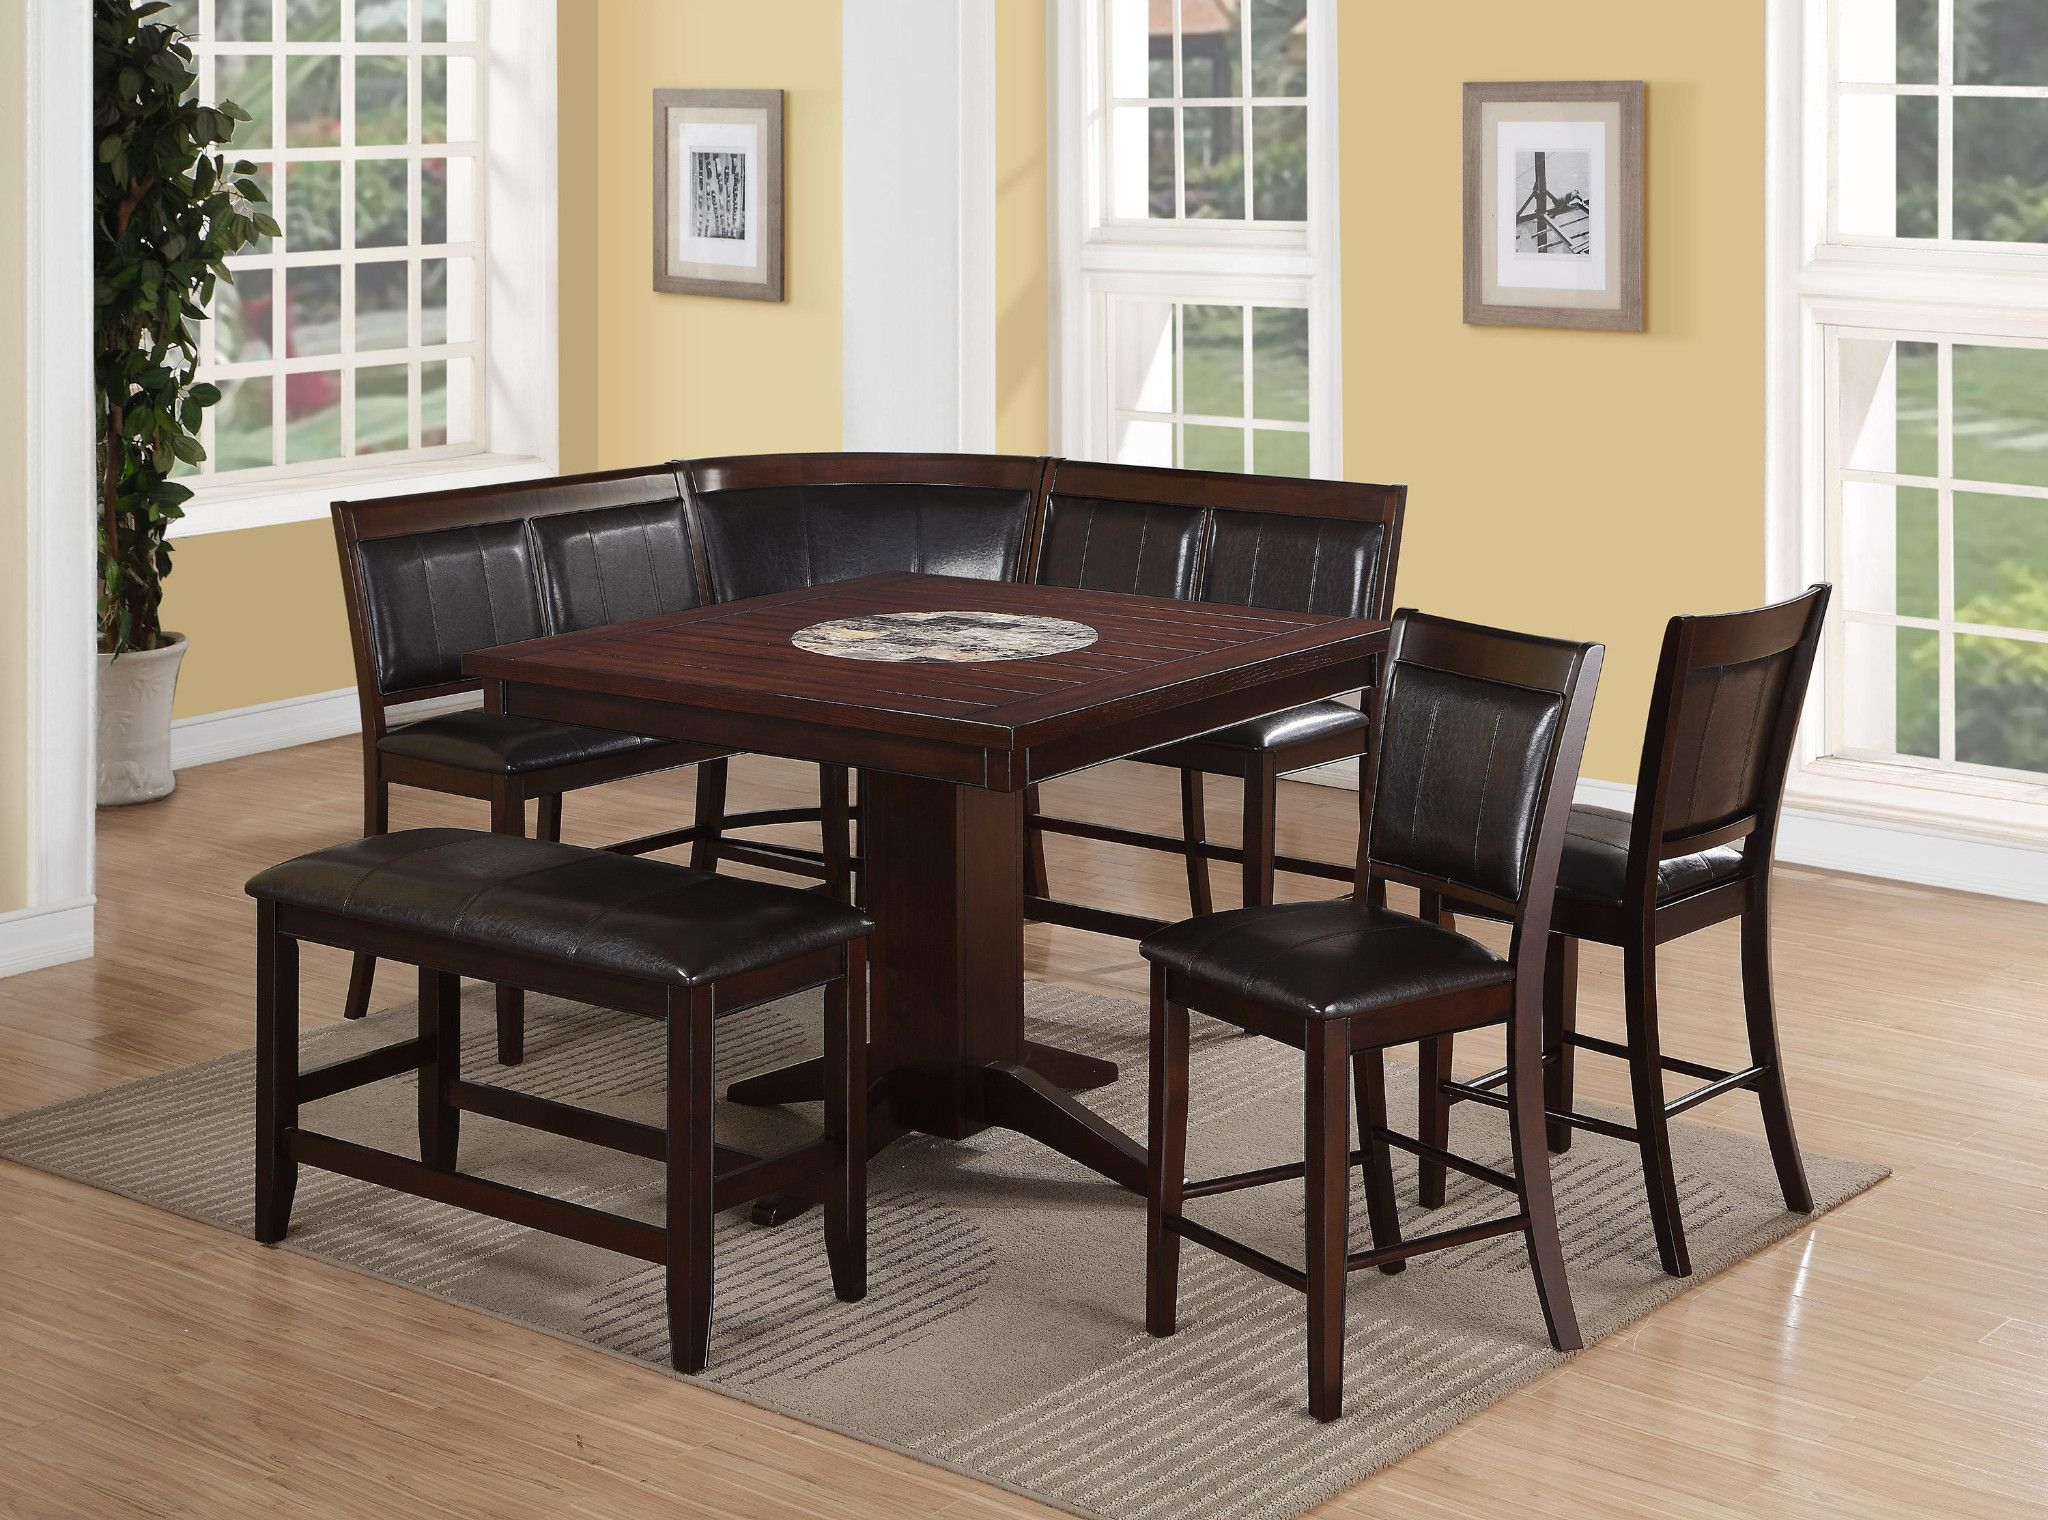 Harrison Nook 6 Piece Corner Nook Counter Height Table 2 High Back Benches Corner B Counter Height Dining Table Set Tall Dining Table Counter Height Table